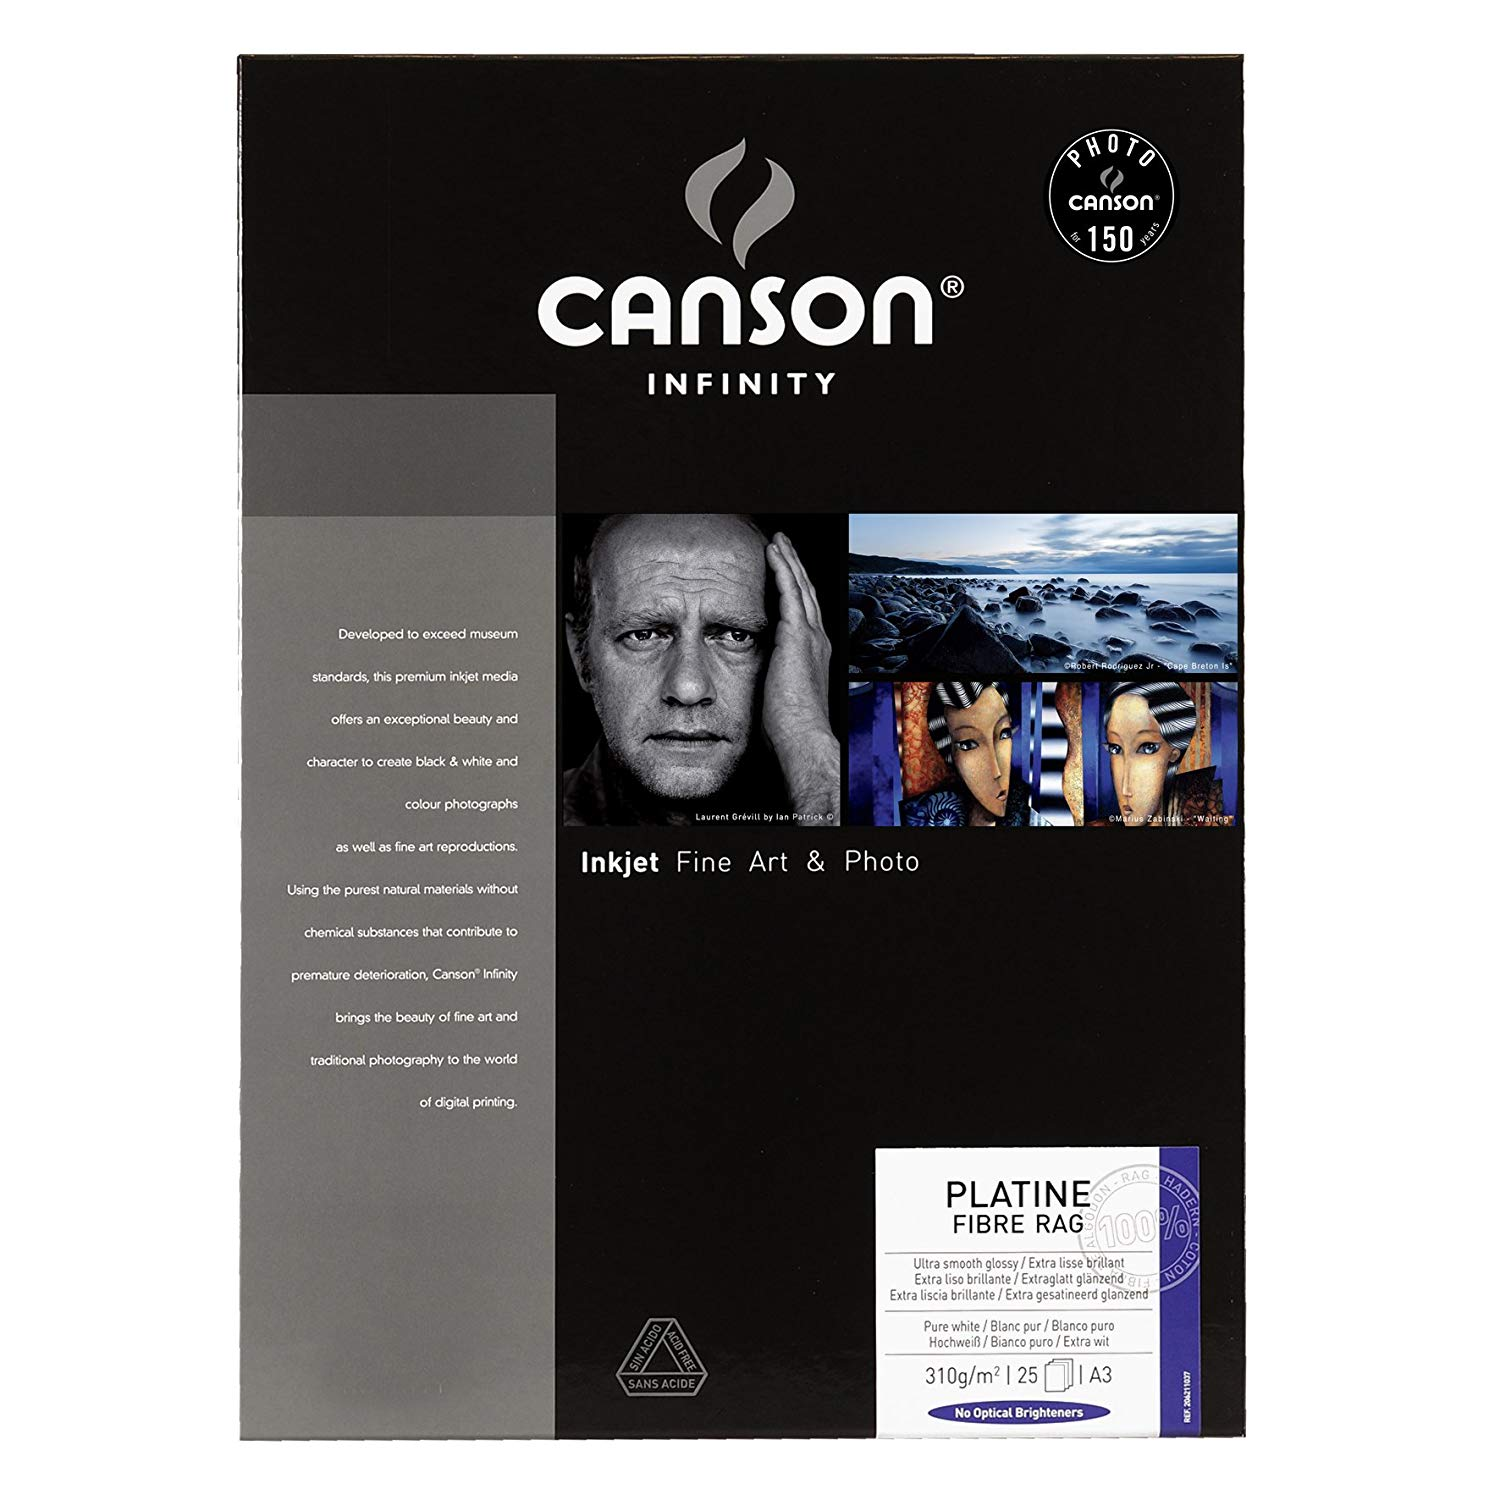 Canson Infinity Platine Fibre Rag 206211037 Photo Paper A3 25 Sheets White